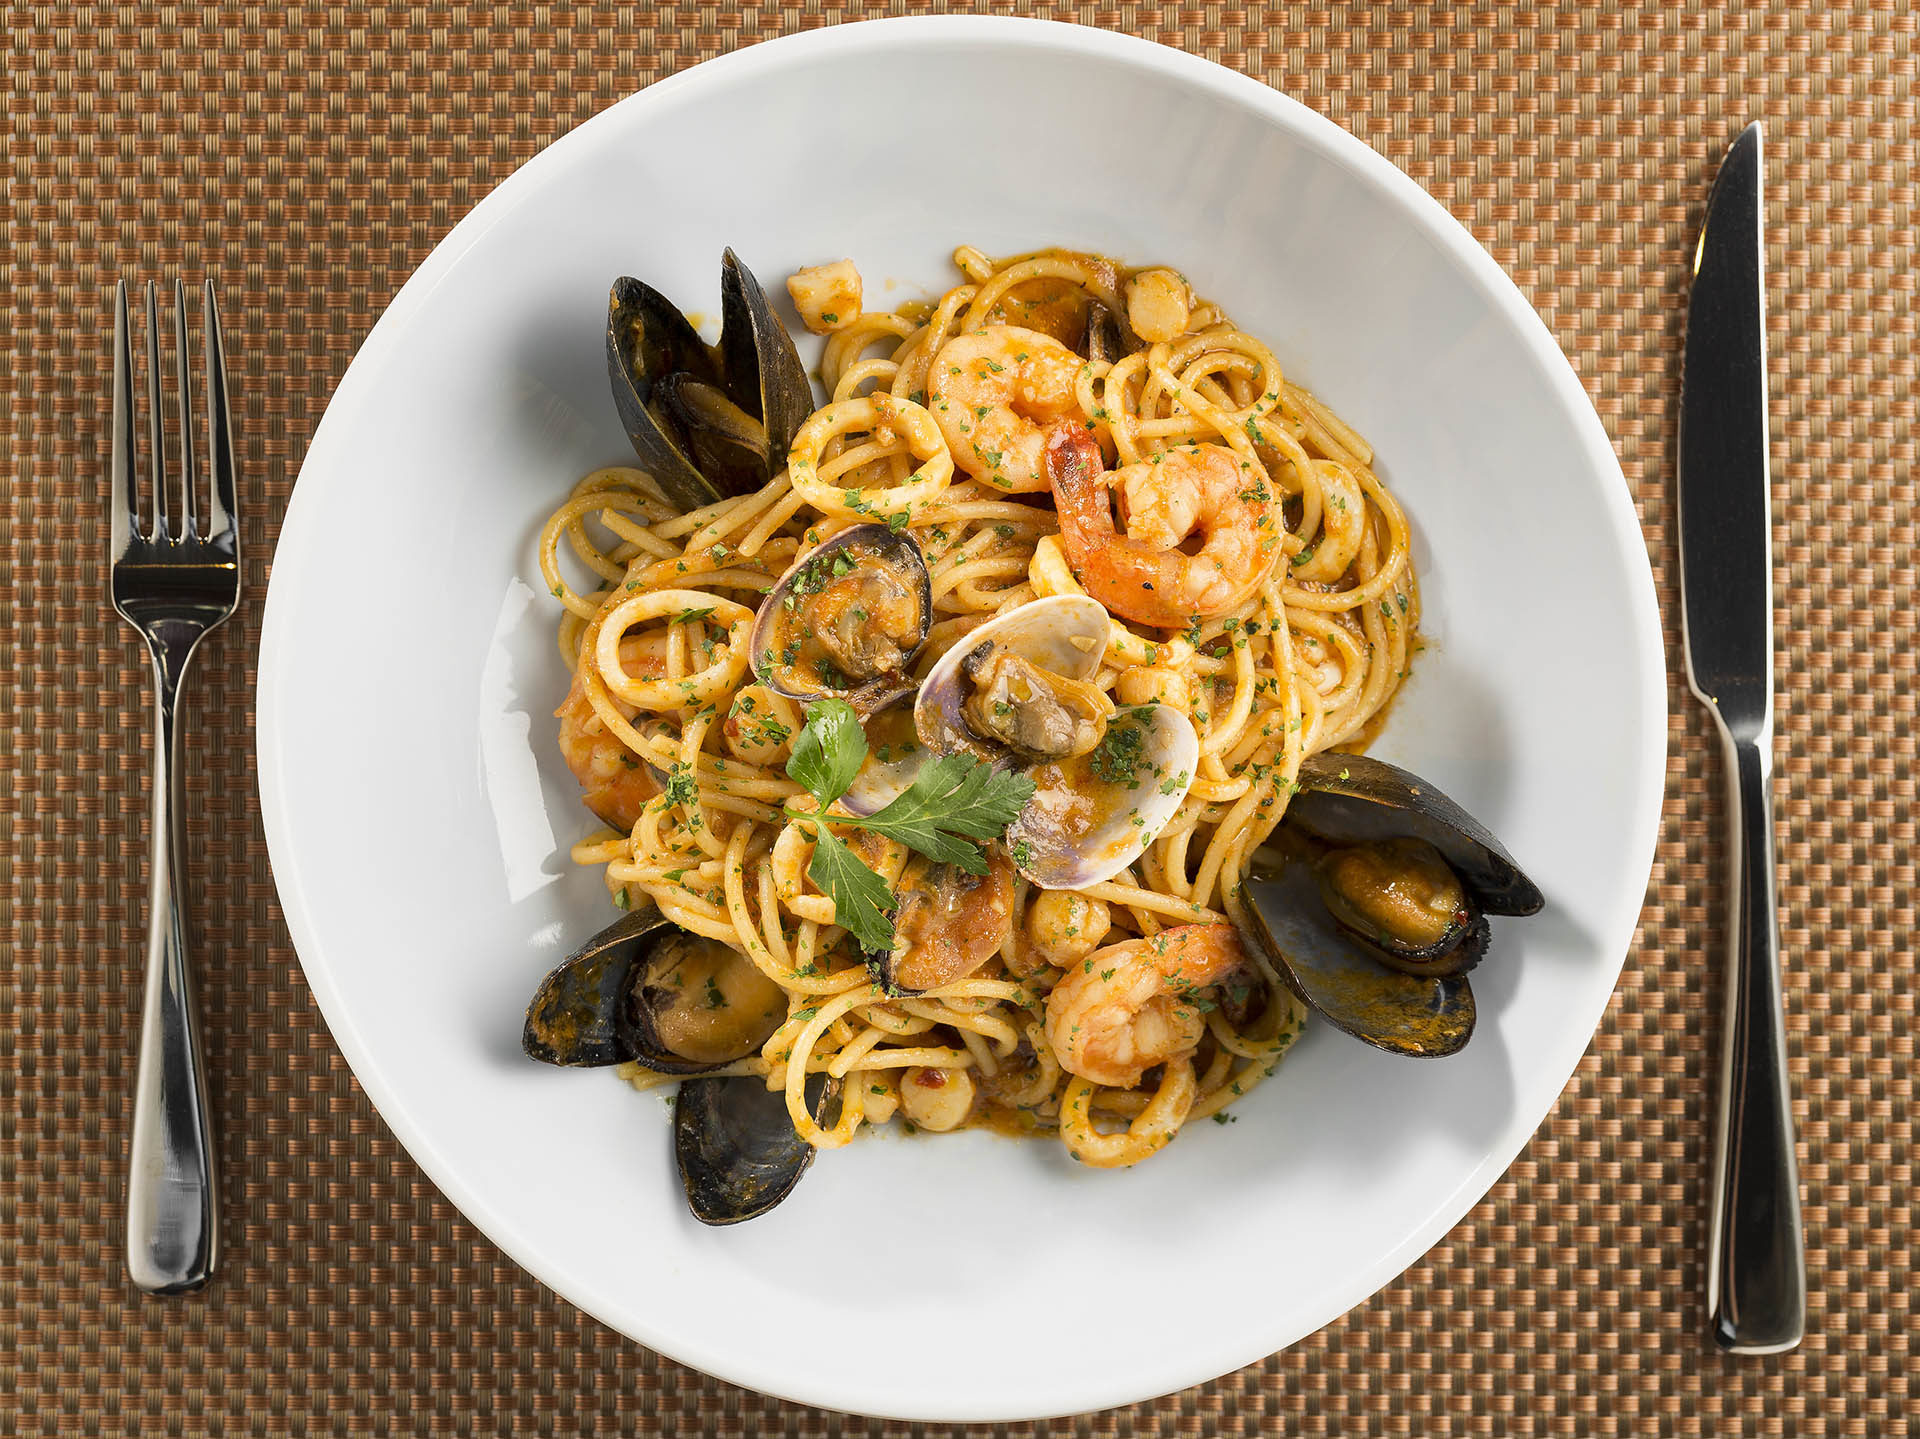 Spaghetti_Clams_Shrimp_013-1920×1439-511912591